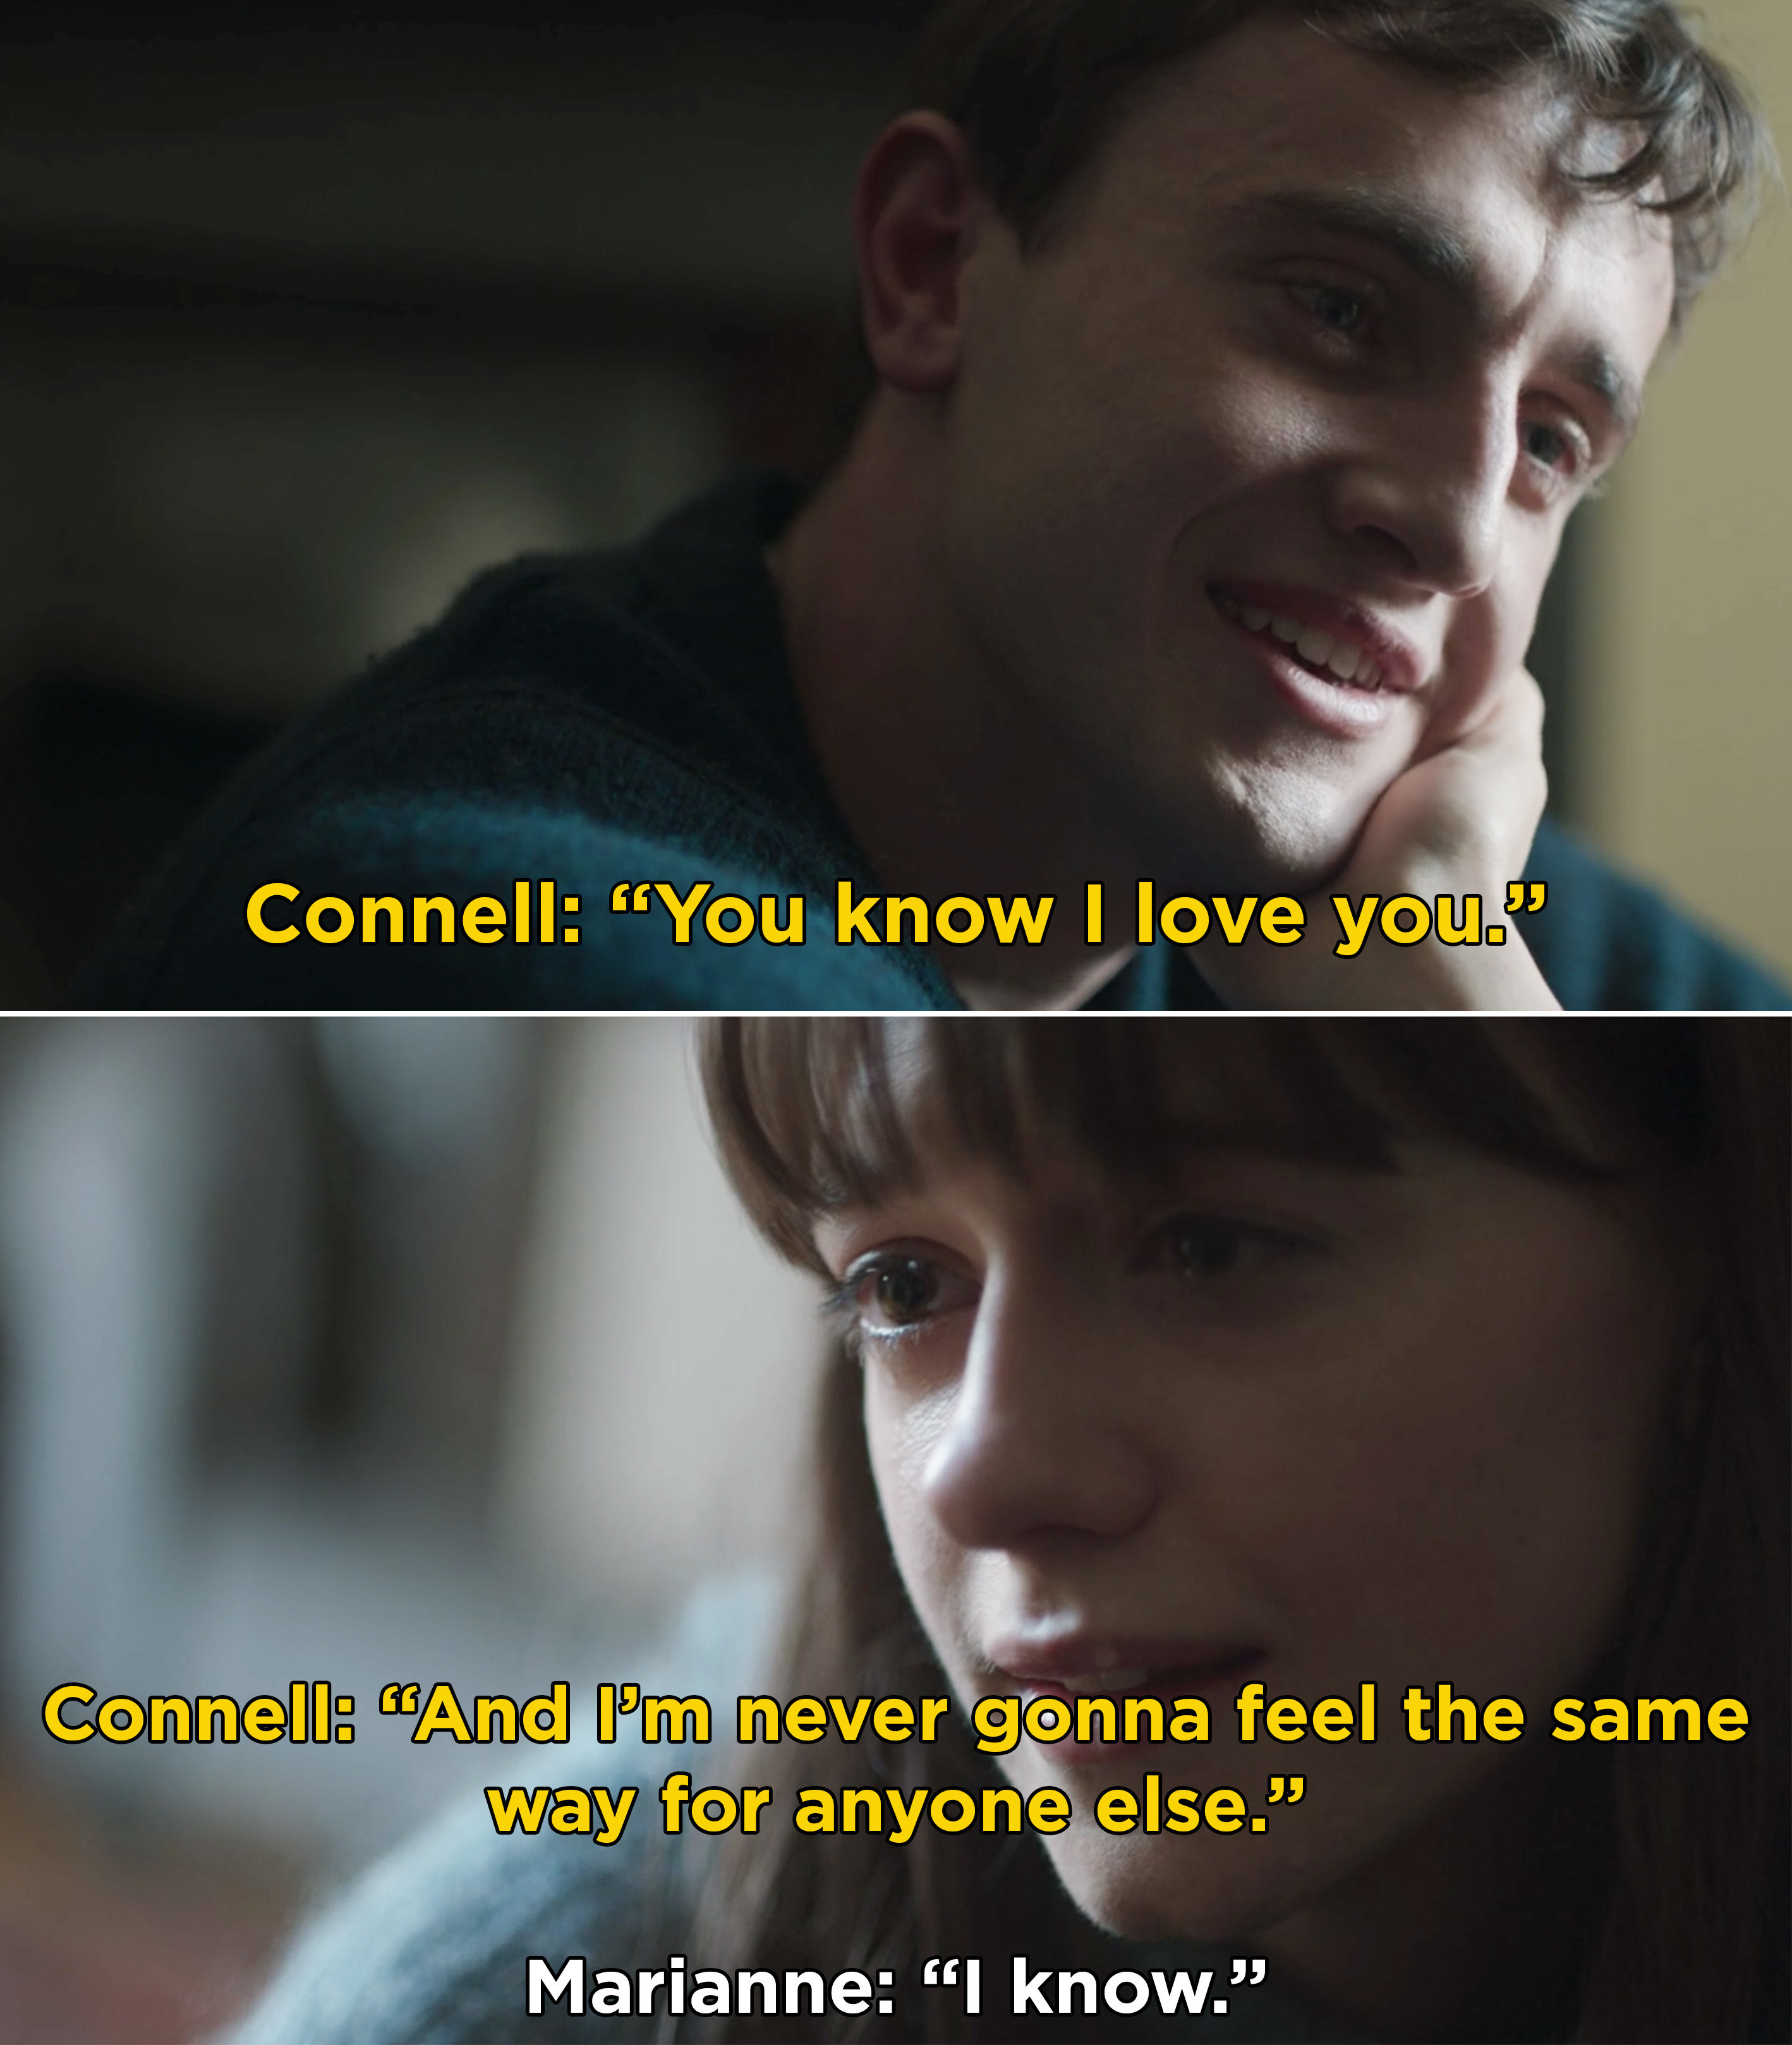 Connell telling Marianne that he will always love her